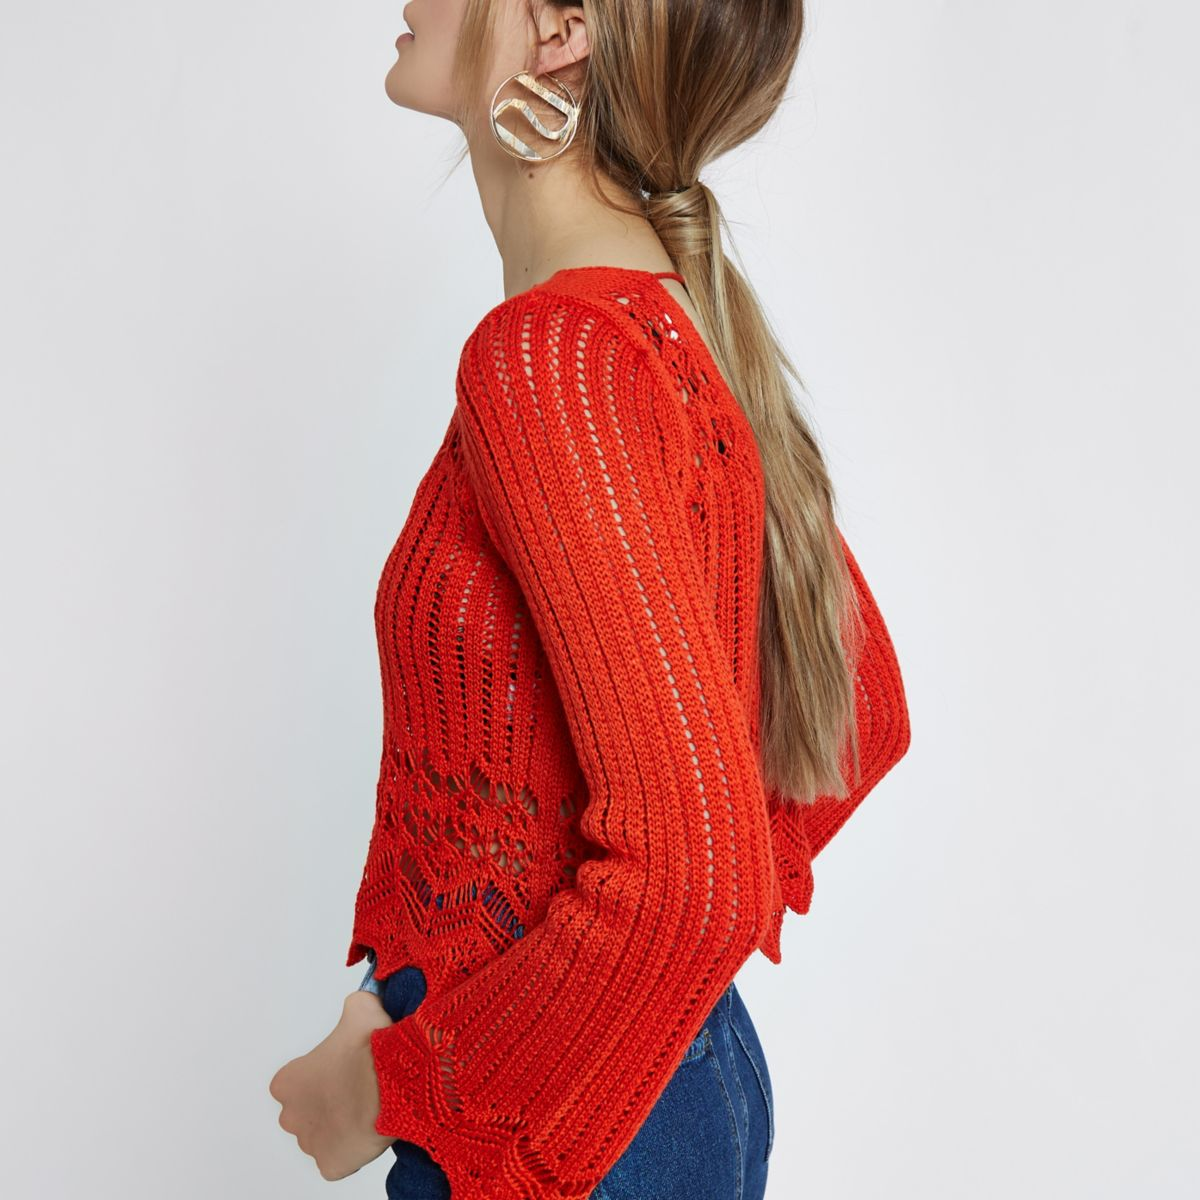 Red crotchet knit tassel crop top